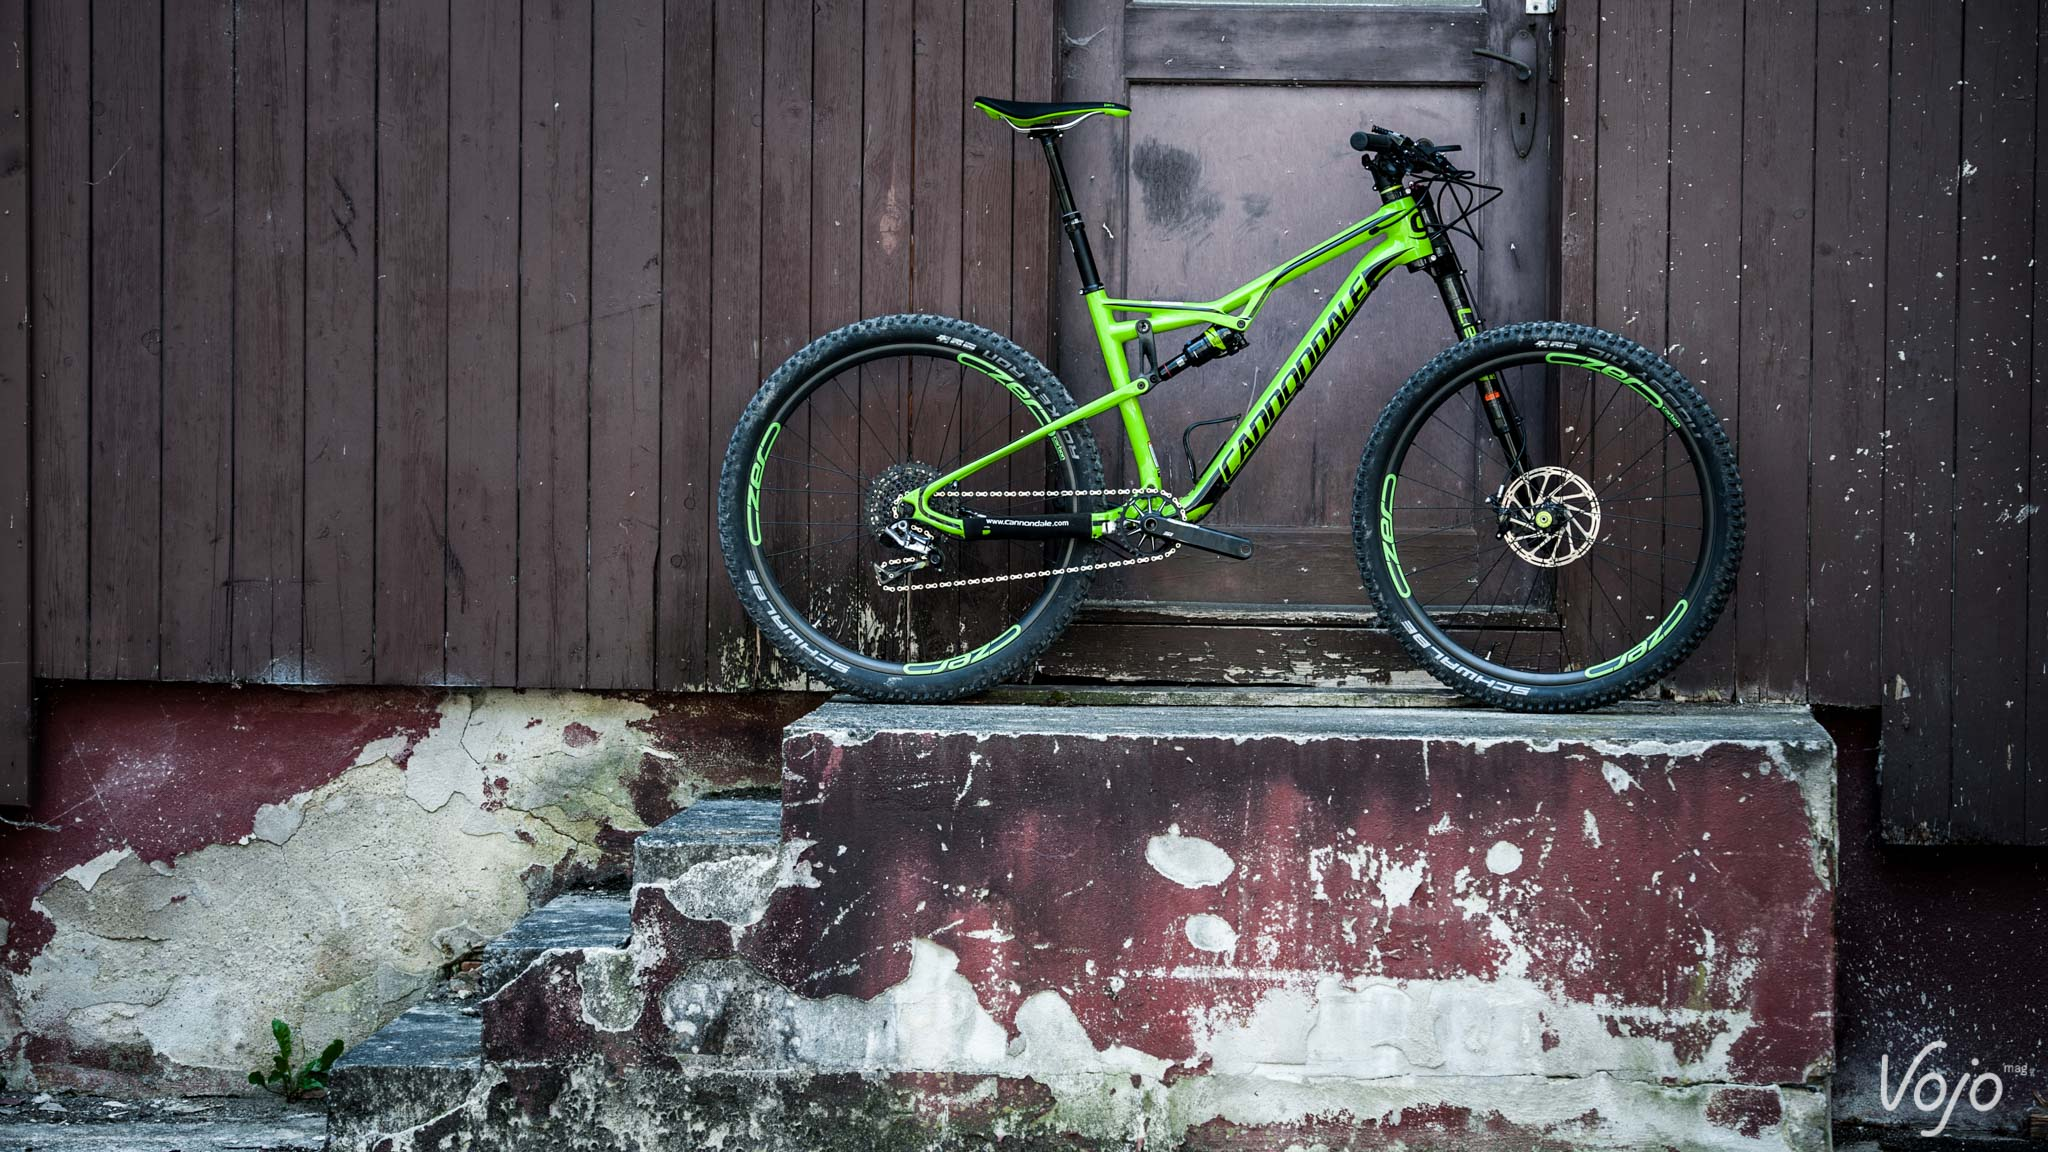 Cannondale-habit-2016-Hi-mod-1-vojo-paul-humbert-first-ride-3